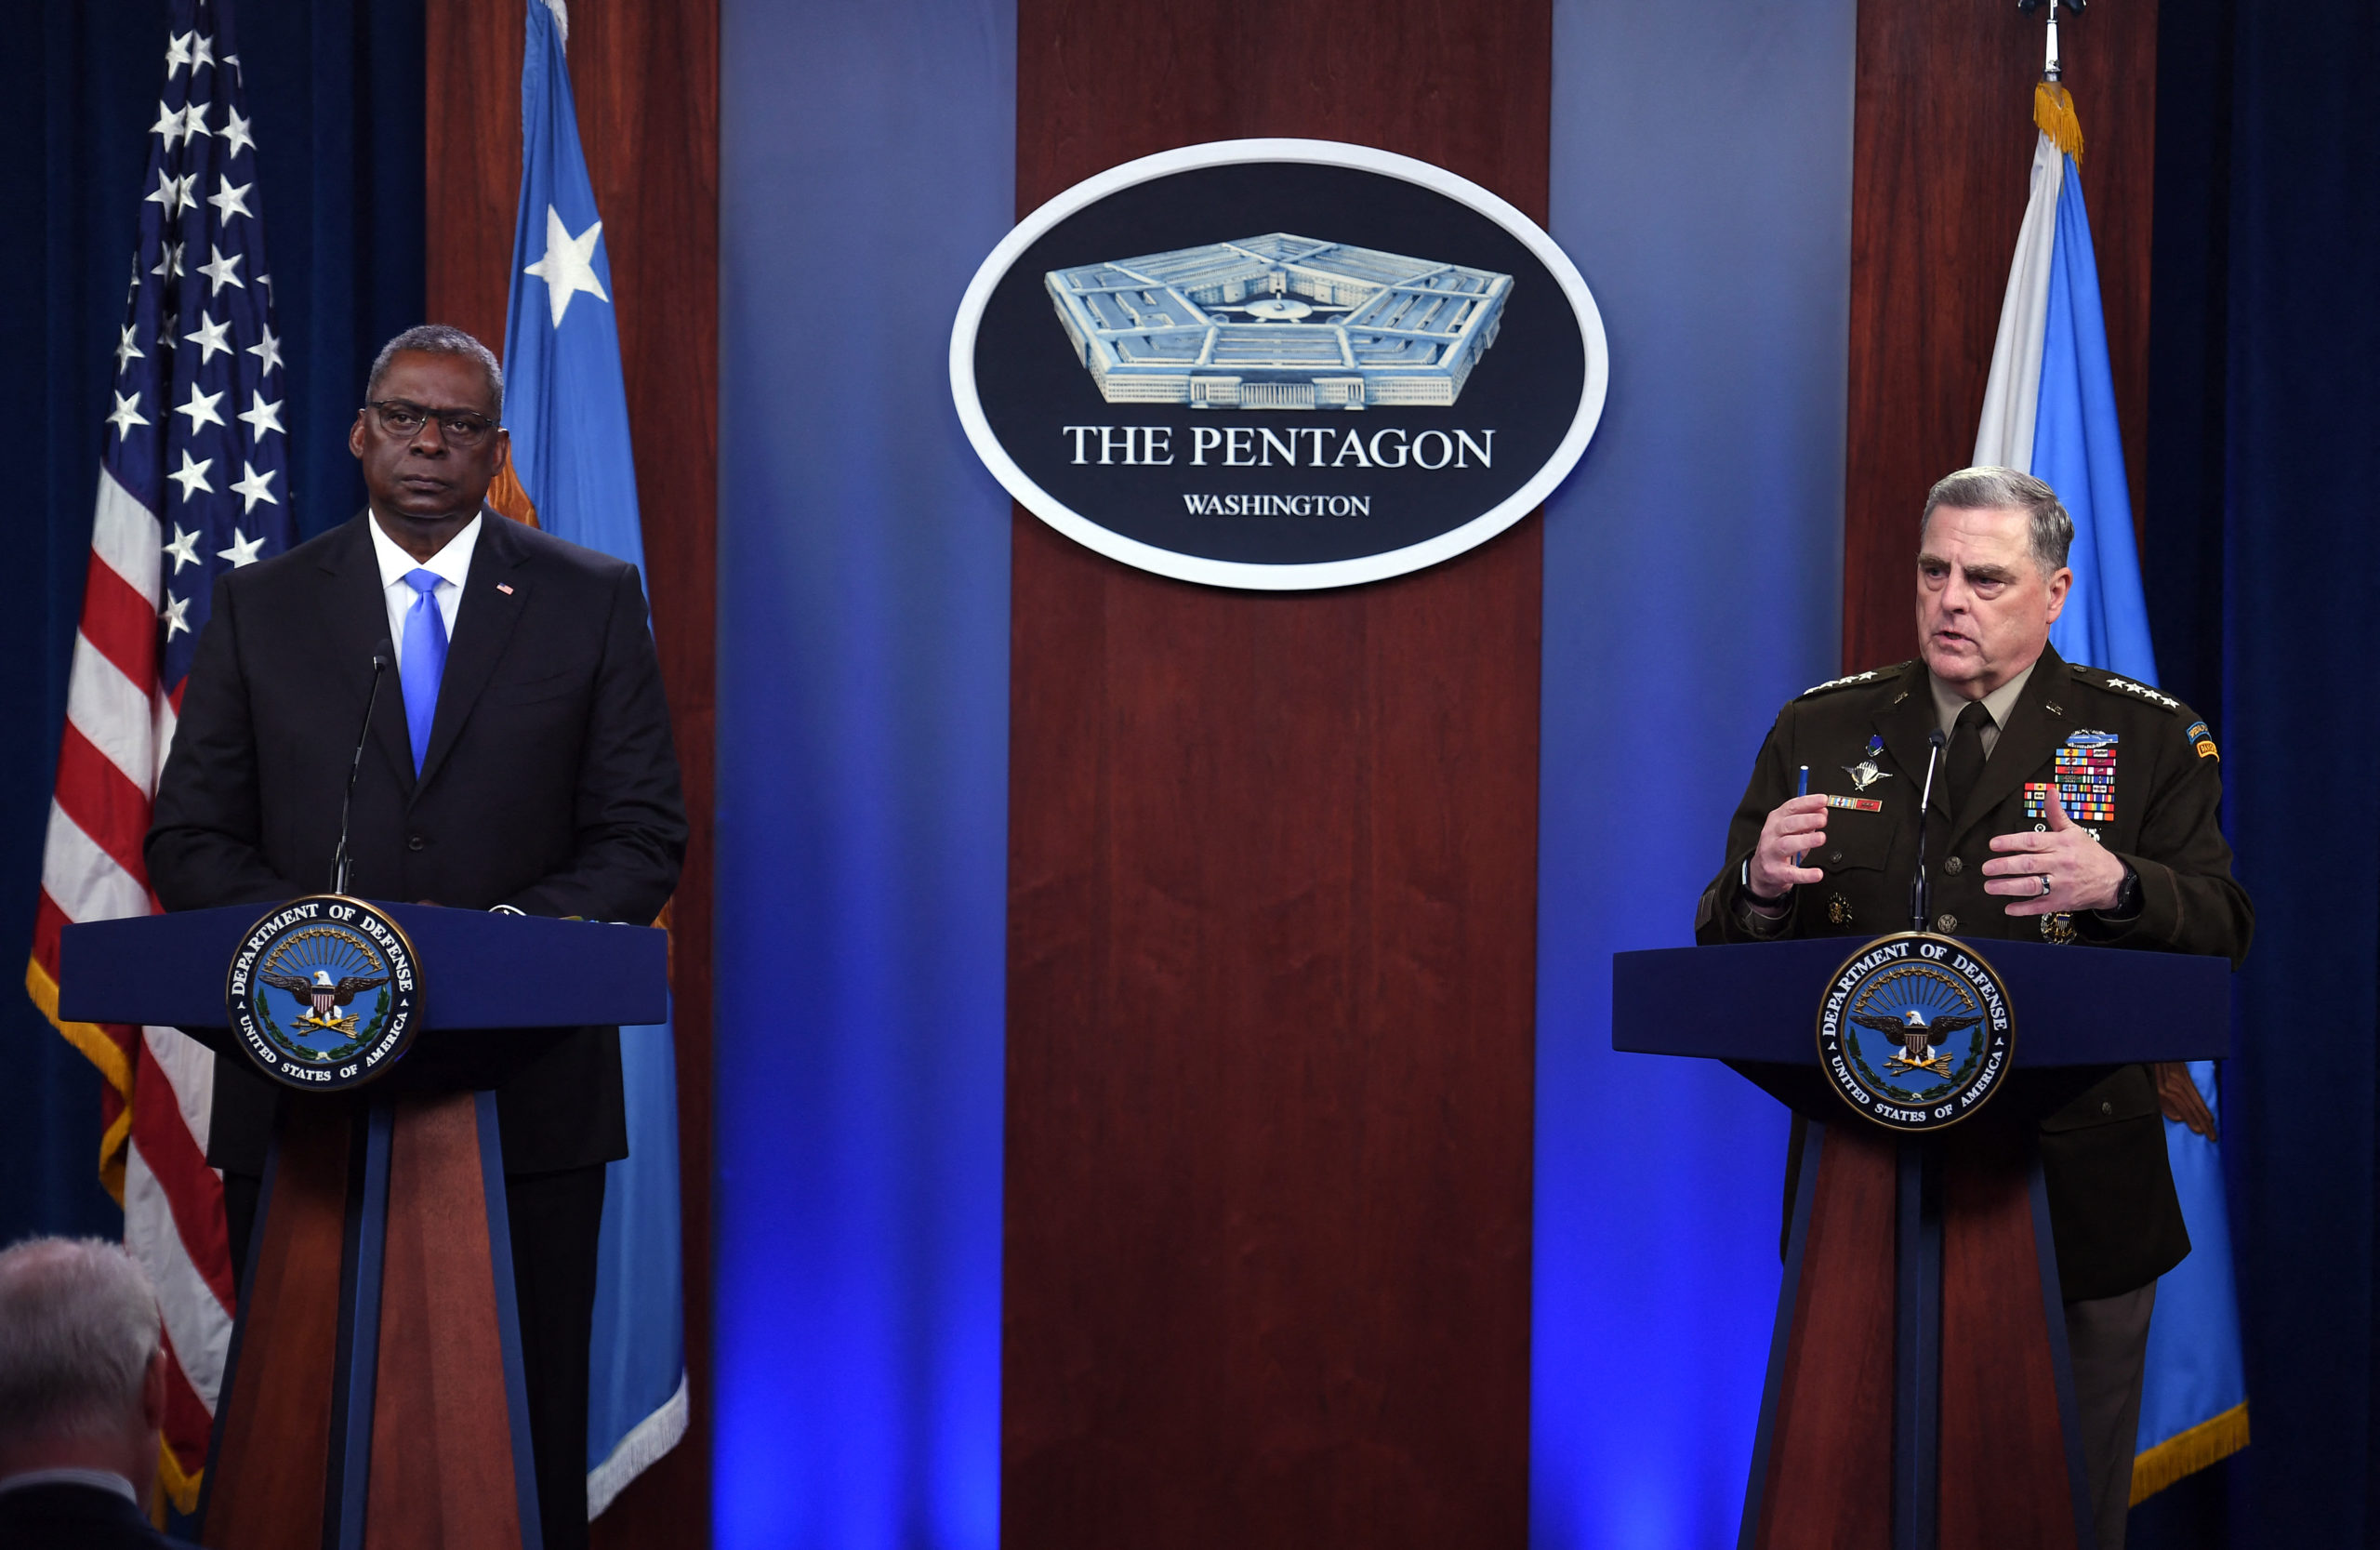 US Defense Secretary Lloyd Austin (L) and Chairman of the Joint Chiefs of Staff, General Mark Milley, hold a press conference on July 21, 2021, at The Pentagon in Washington, DC. (Photo by Olivier DOULIERY / AFP) (Photo by OLIVIER DOULIERY/AFP via Getty Images)